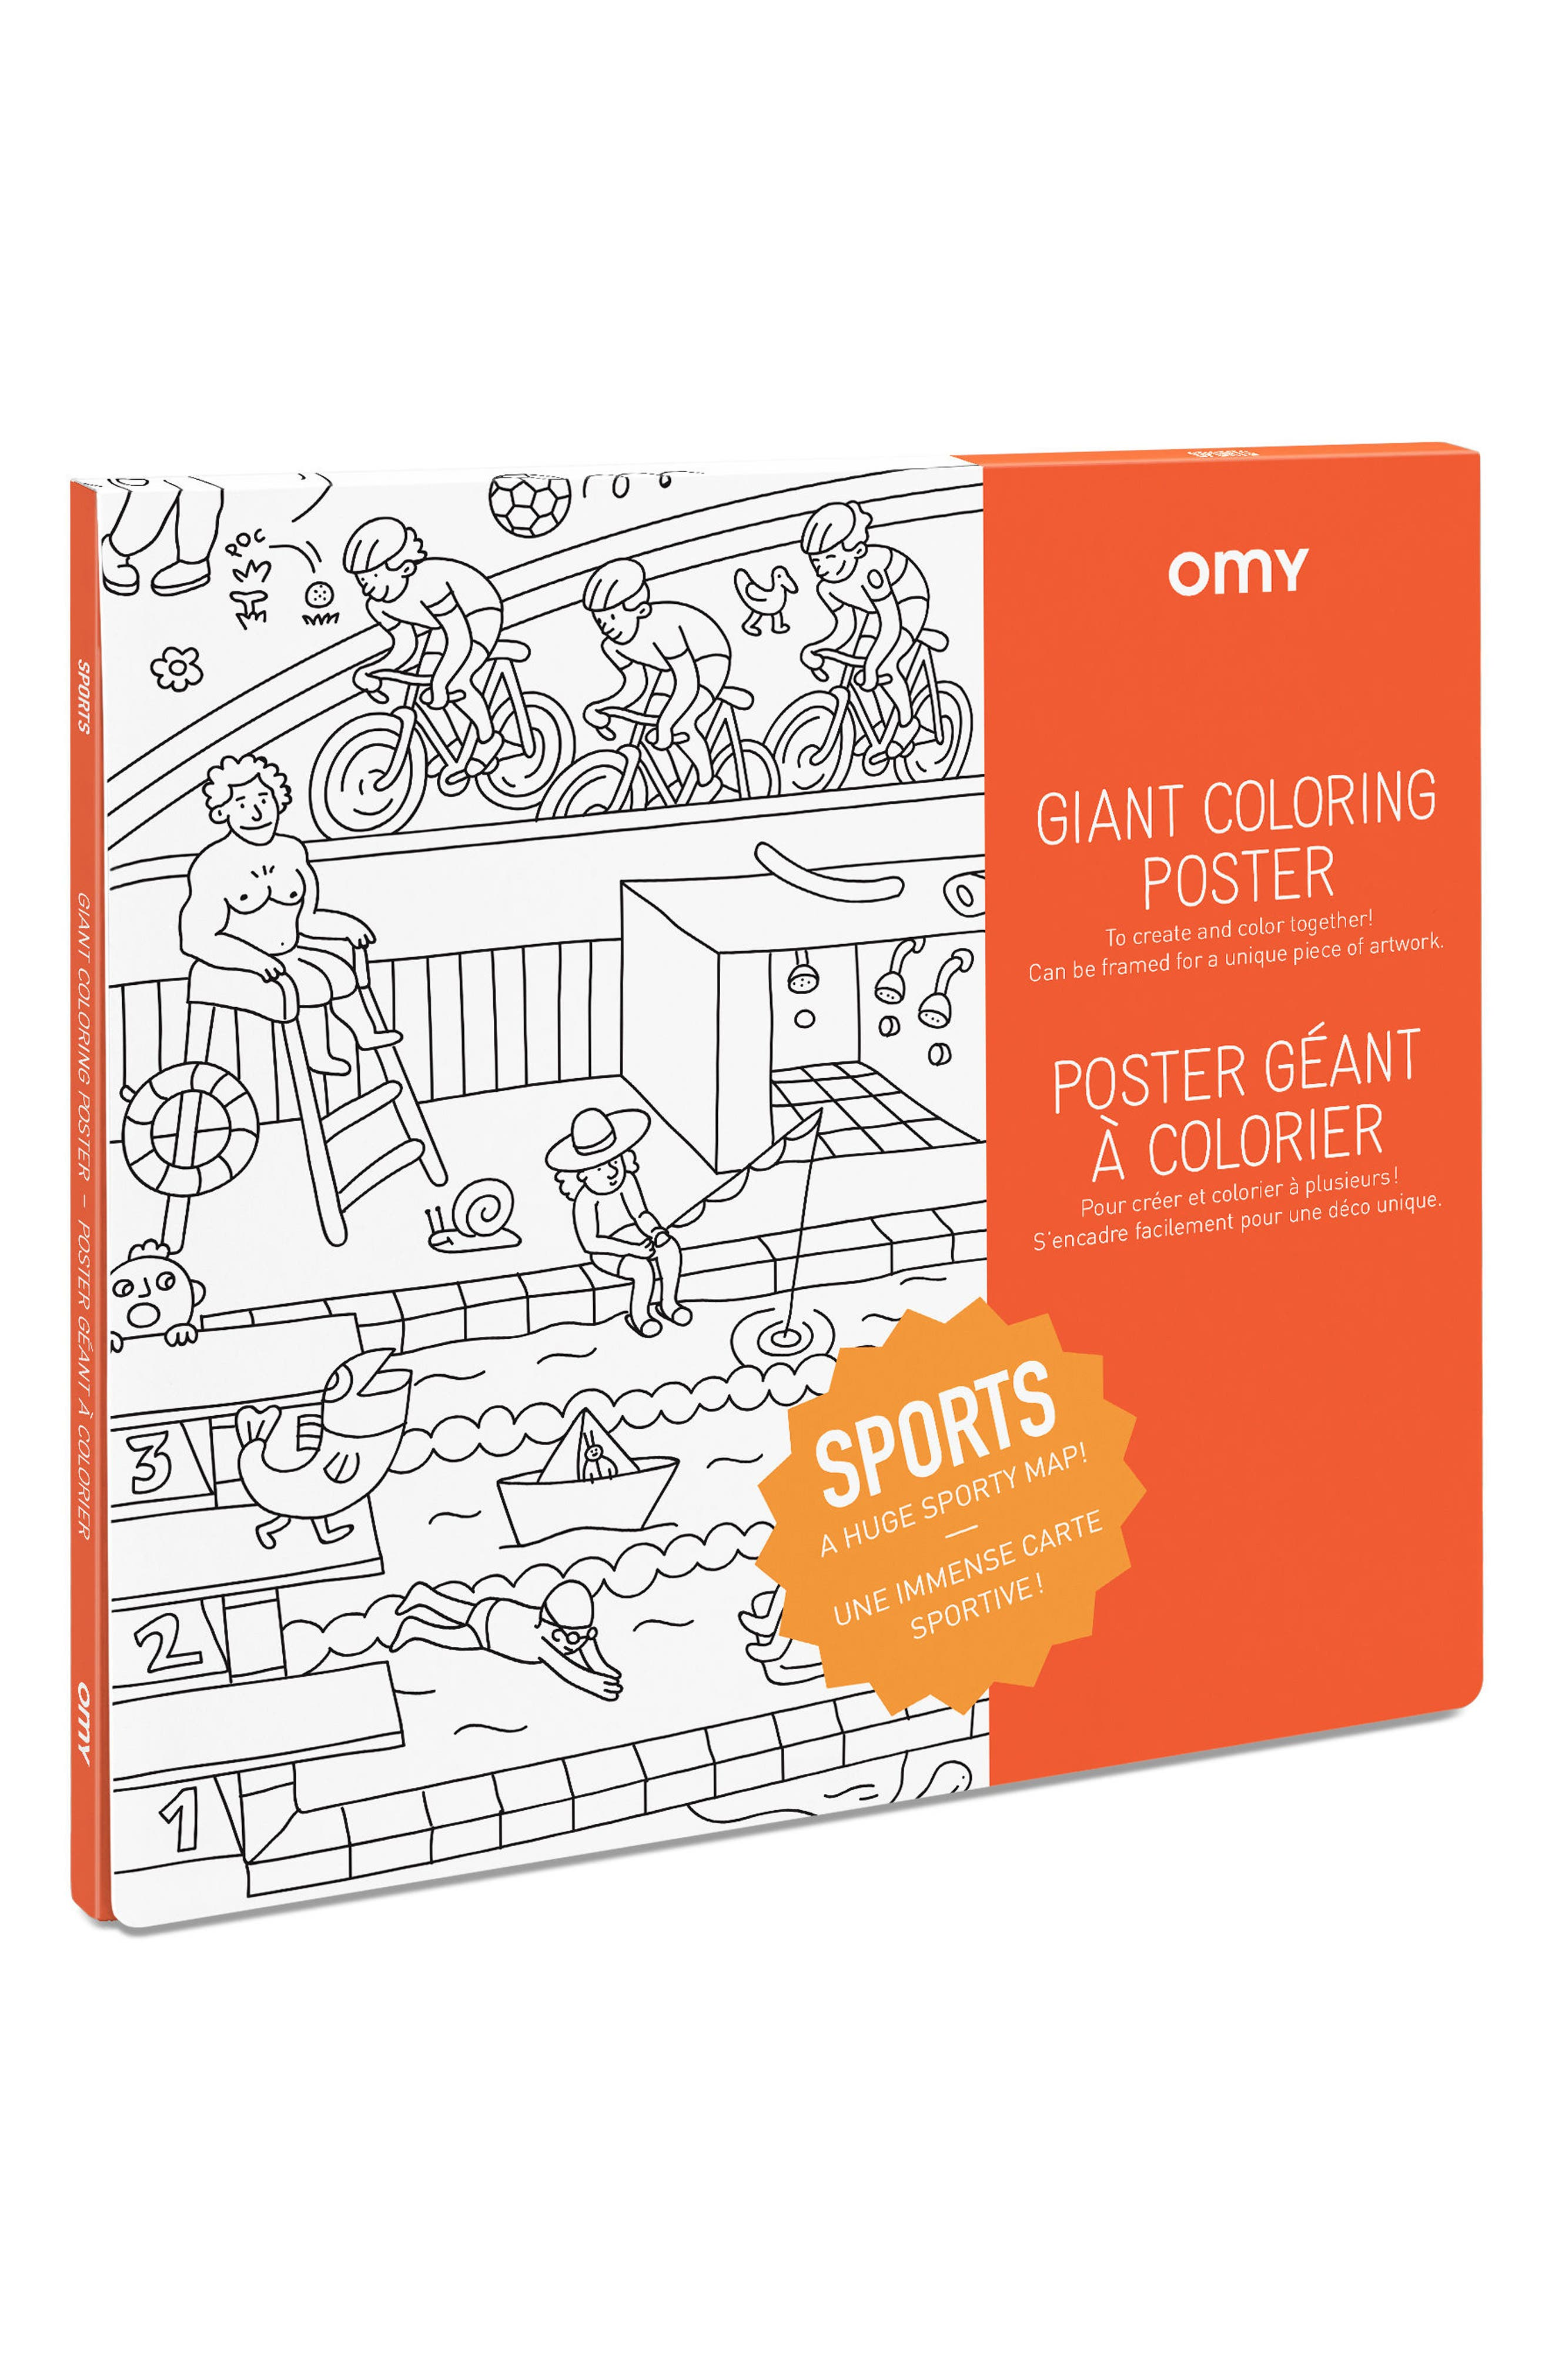 Alternate Image 1 Selected - OMY Sports Giant Coloring Poster